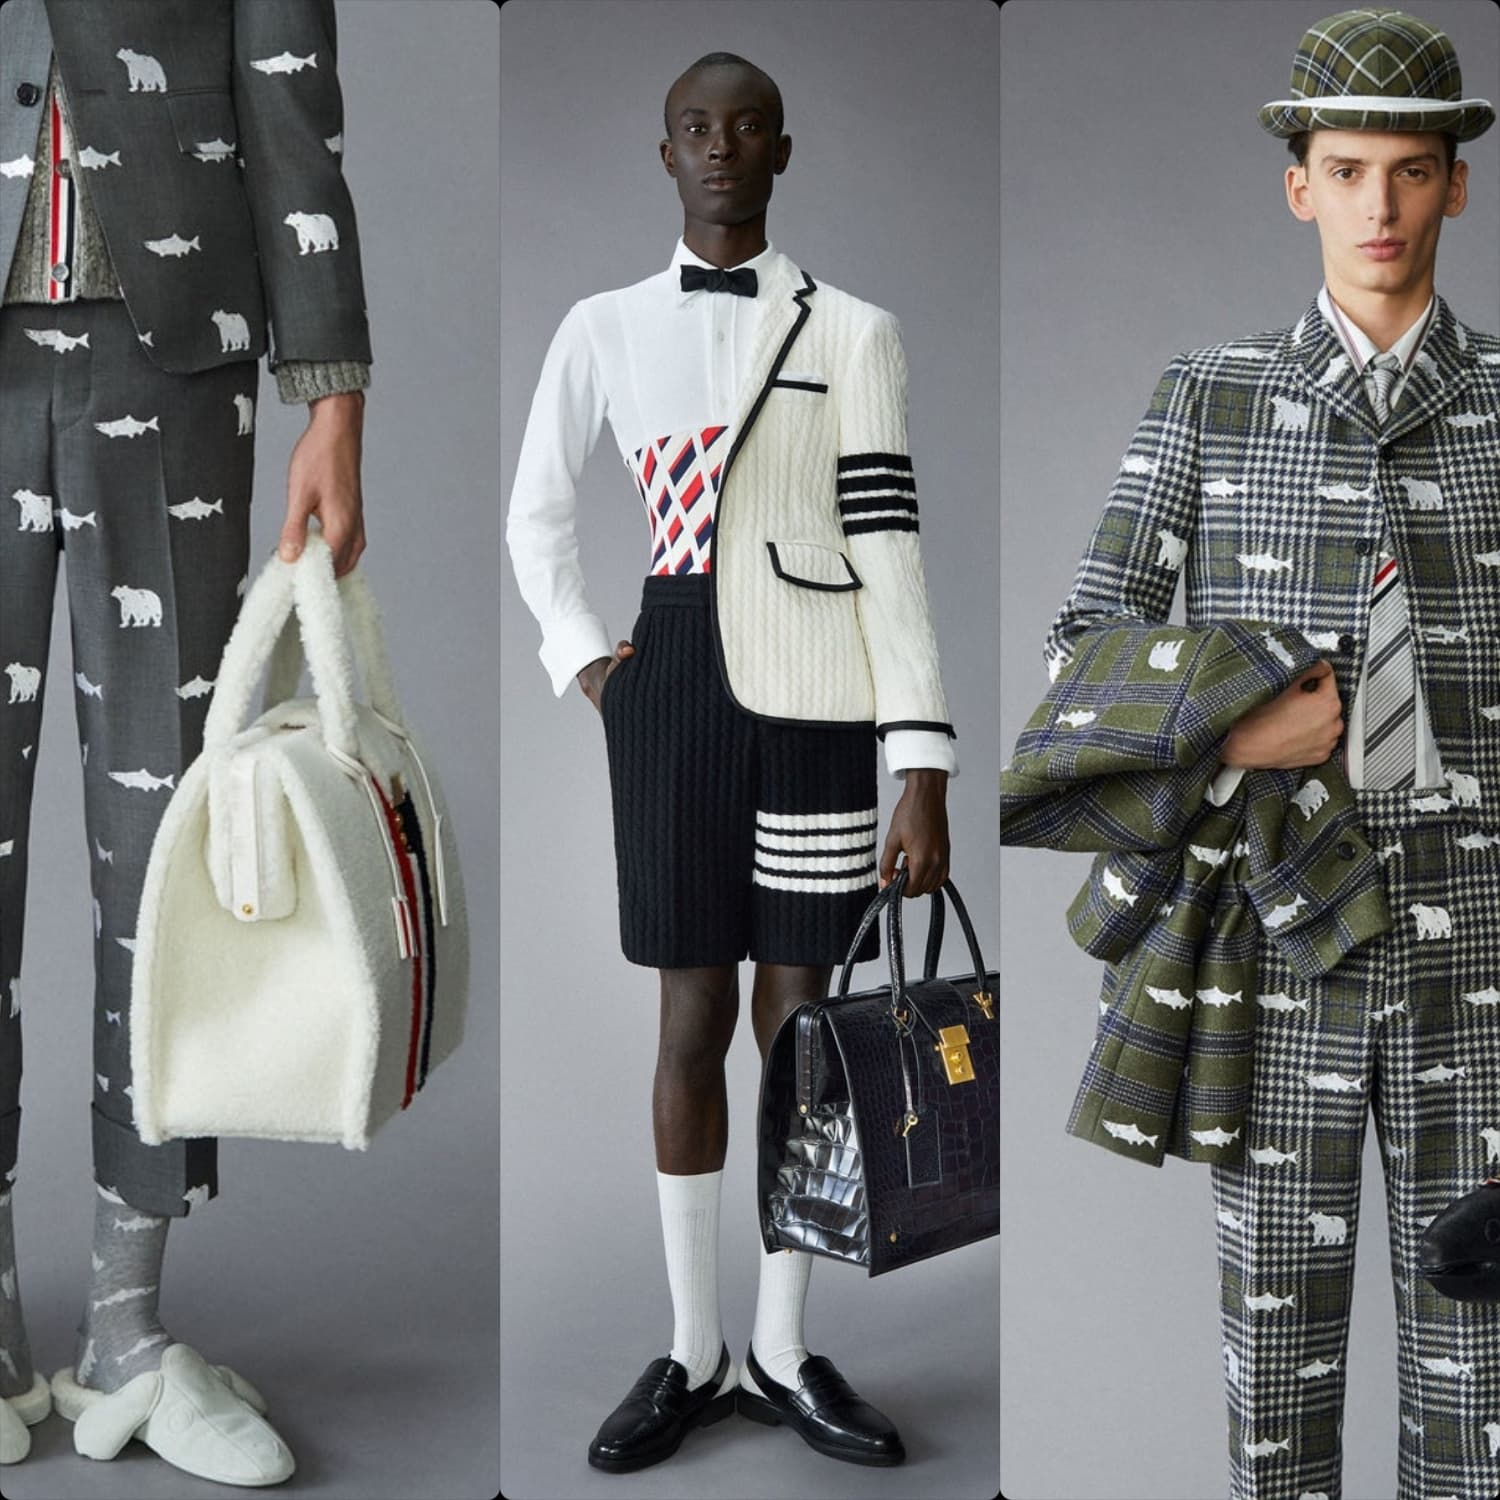 Thom Browne Men Pre-Fall 2021 New York. RUNWAY MAGAZINE ® Collections. RUNWAY NOW / RUNWAY NEW